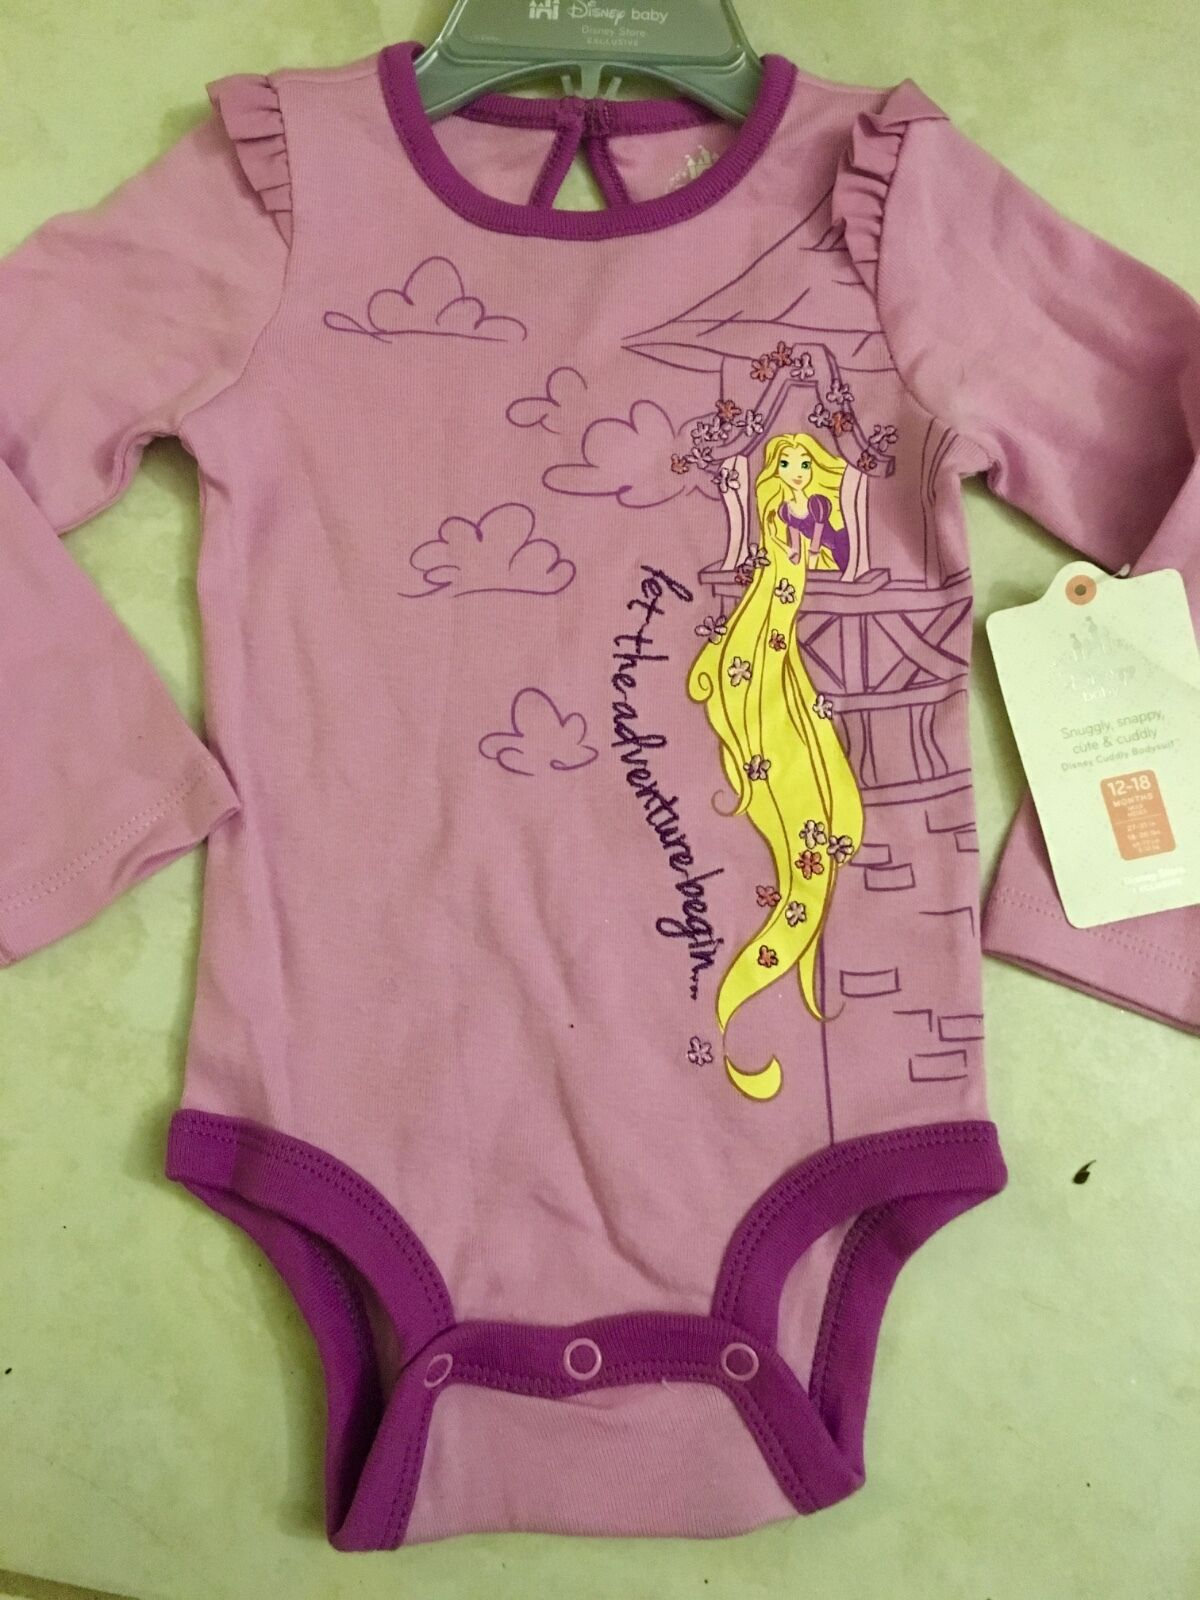 NEW Disney Store Tangled Princess RAPUNZEL Cuddly Bodysuit Baby 12